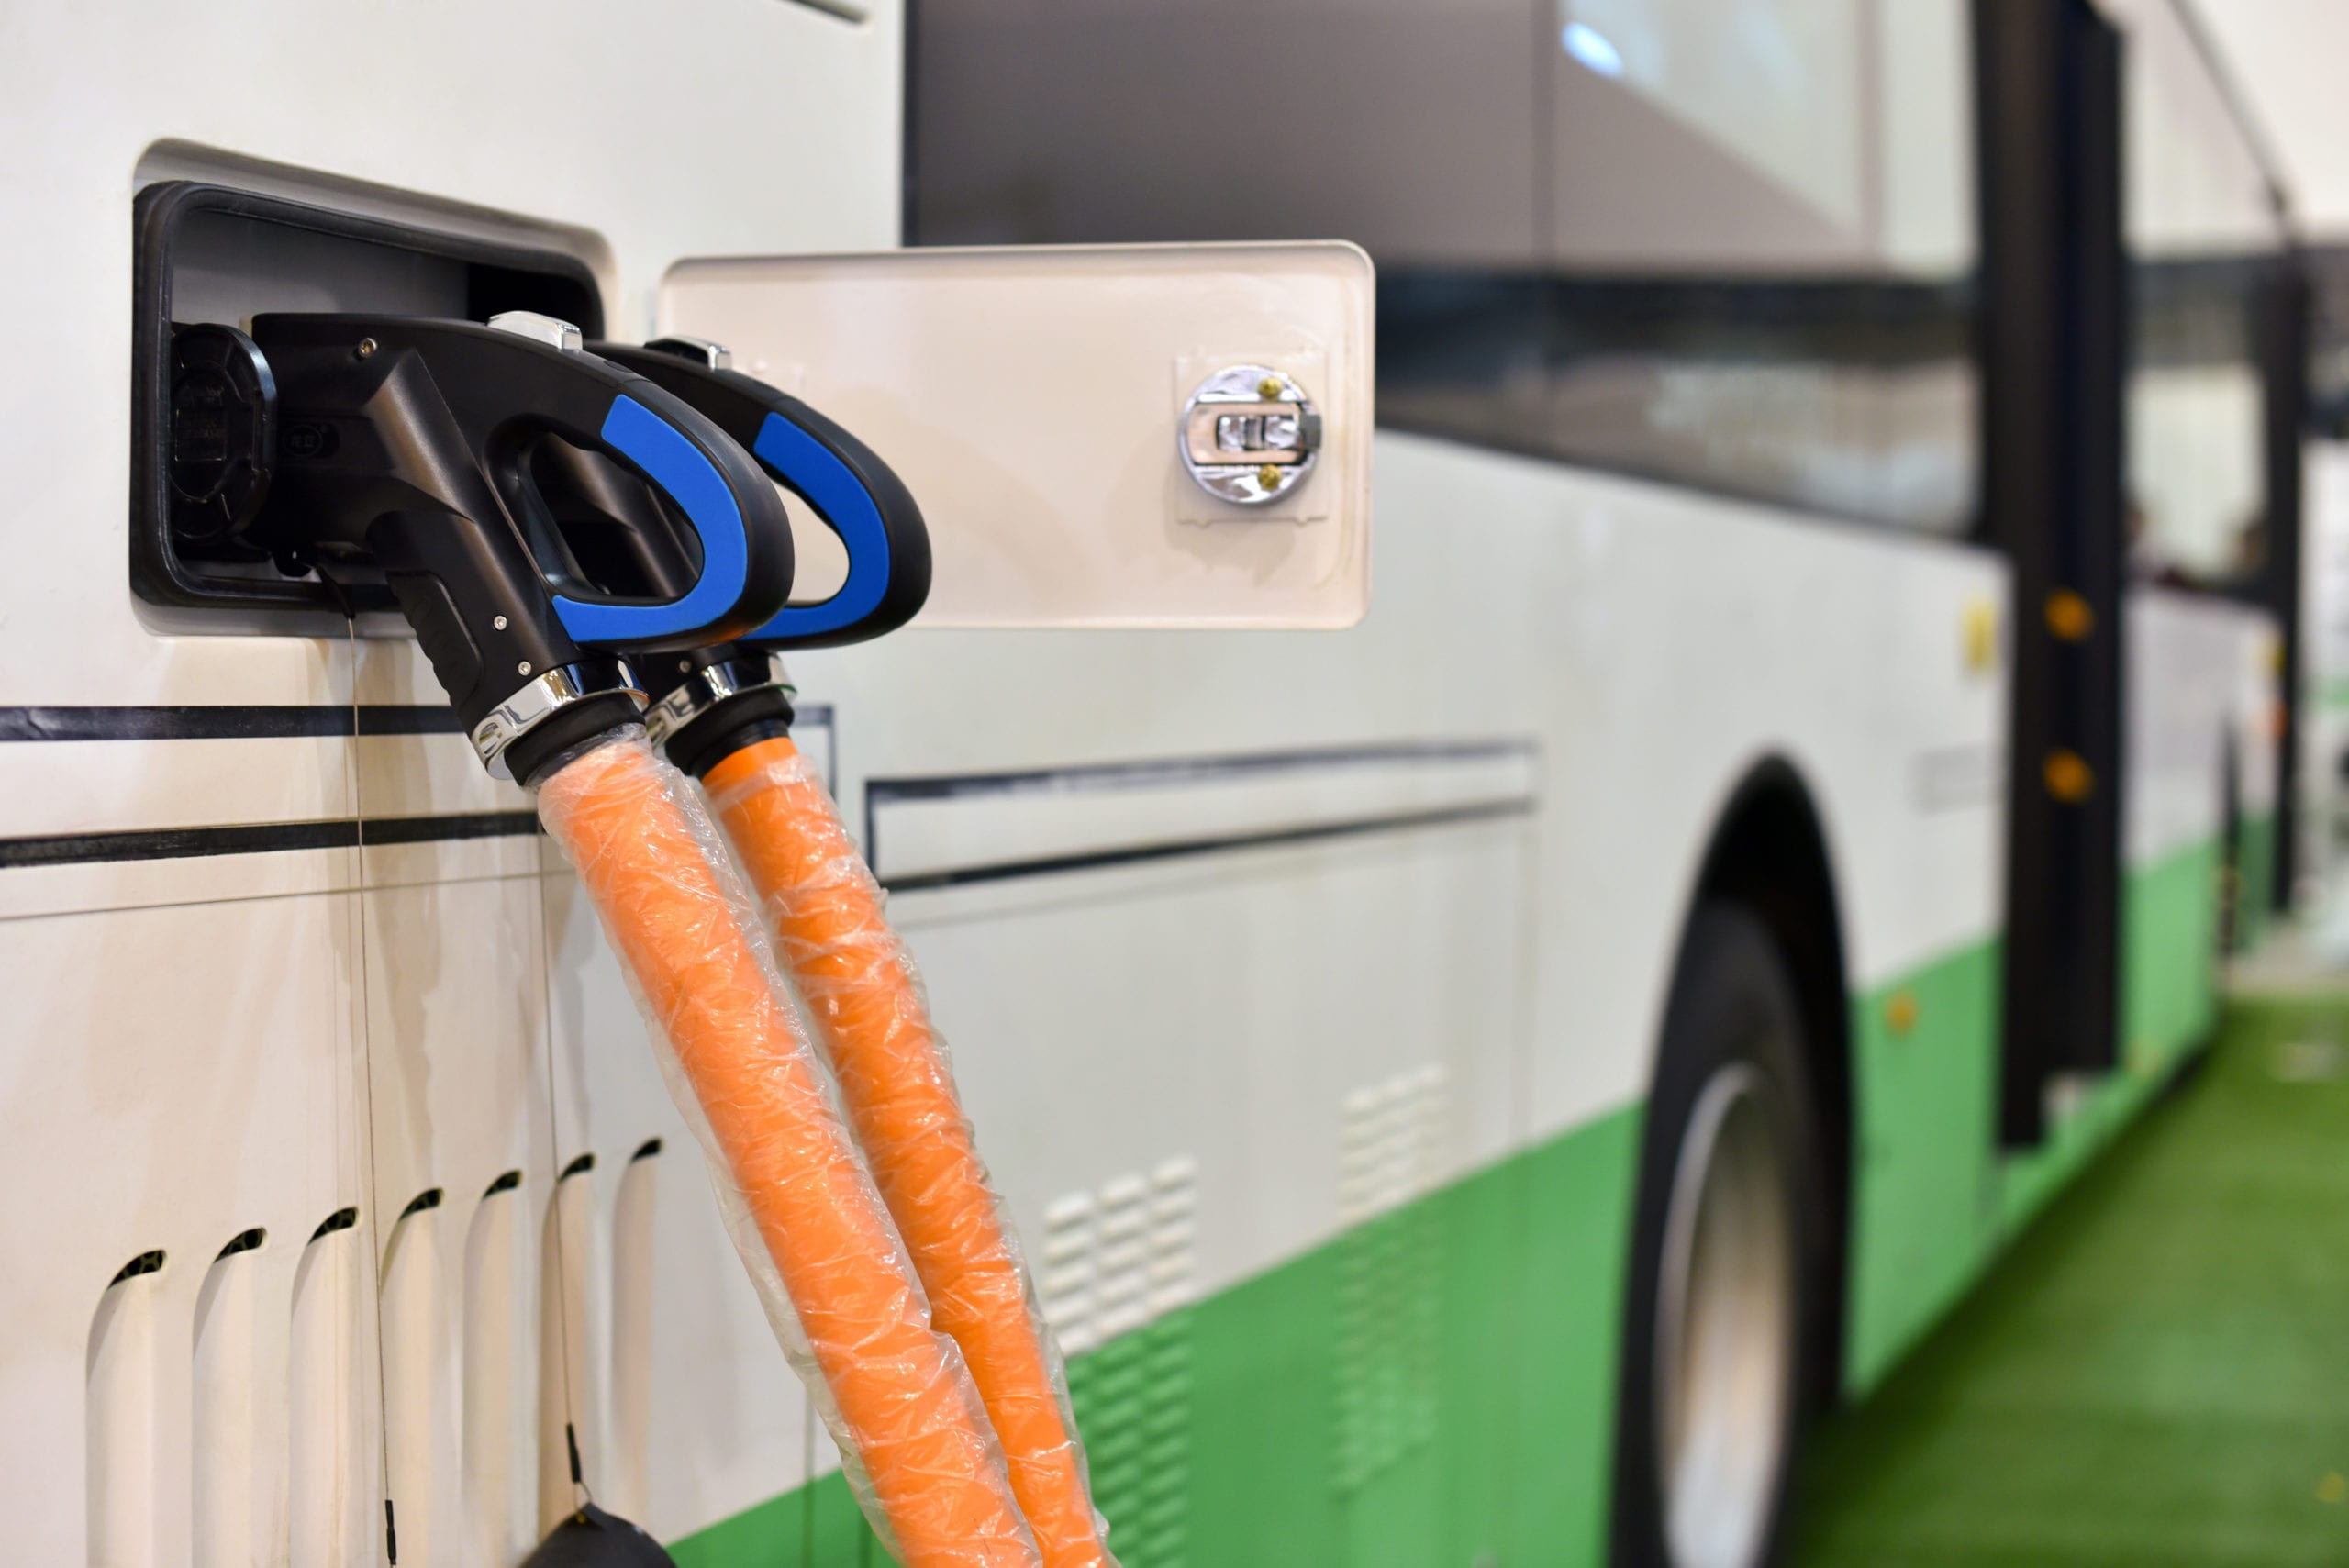 PG&E Electric Bus Charging